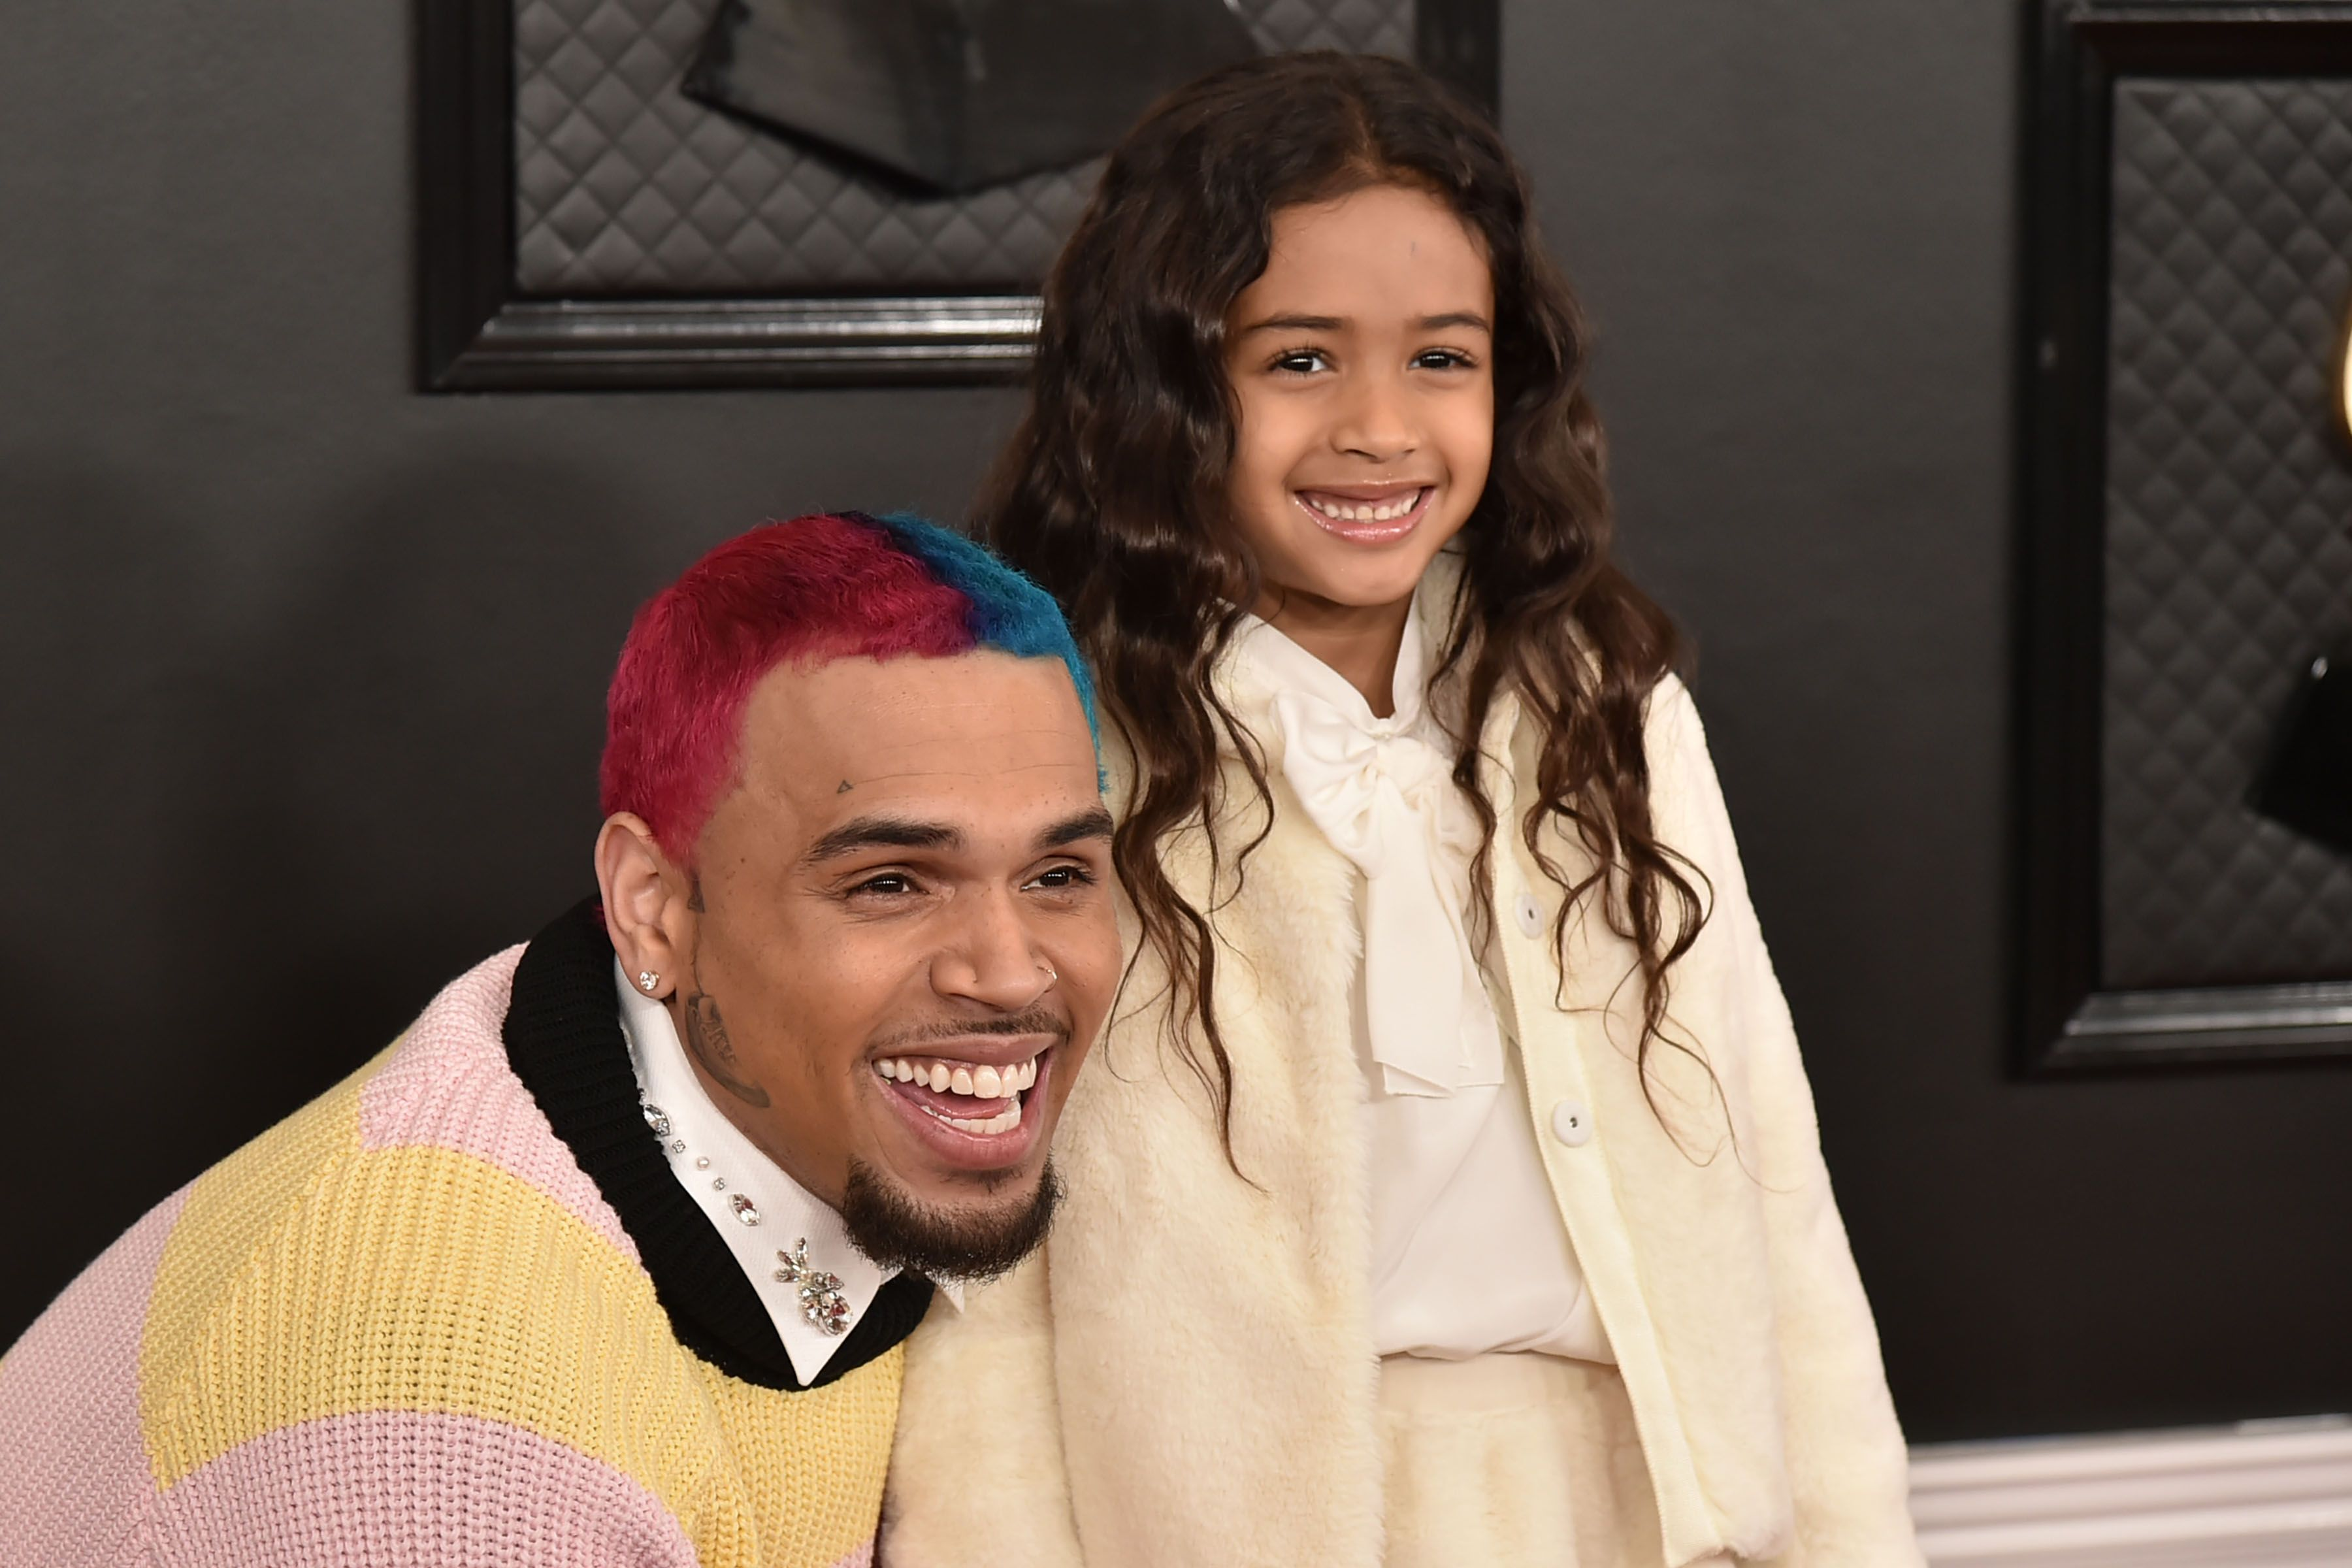 Chris Brown and Royalty Brown at the Grammy Awards on January 26, 2020 in Los Angeles.   Photo: Getty Images